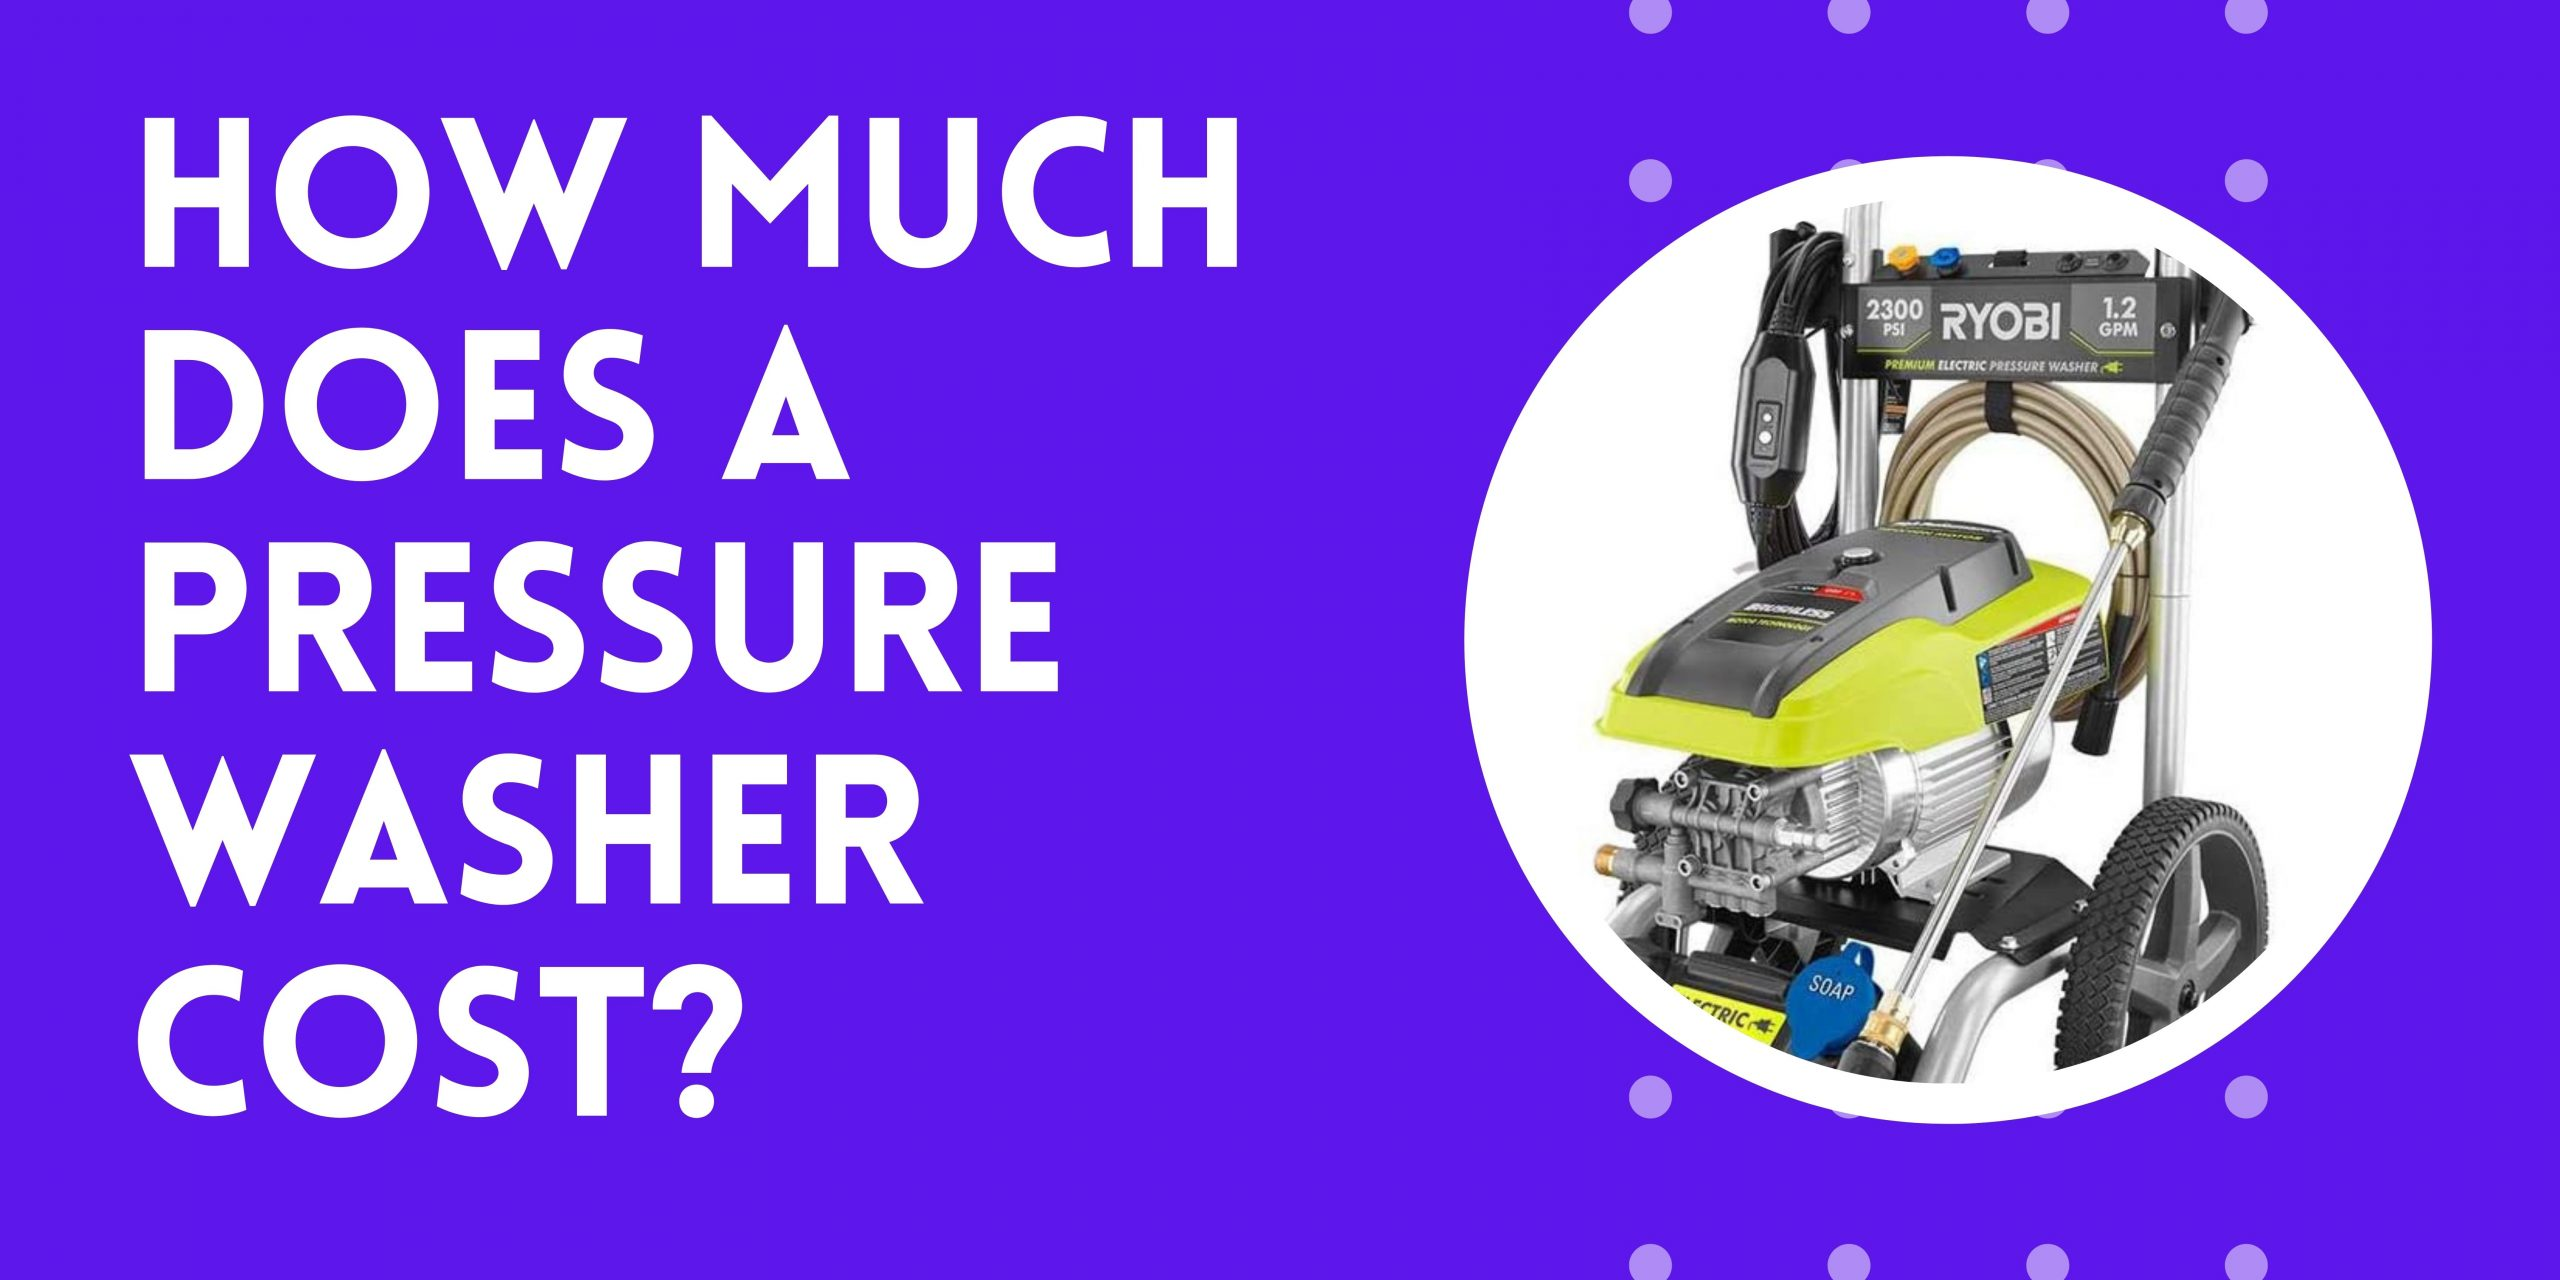 How Much Does A Pressure Washer Cost